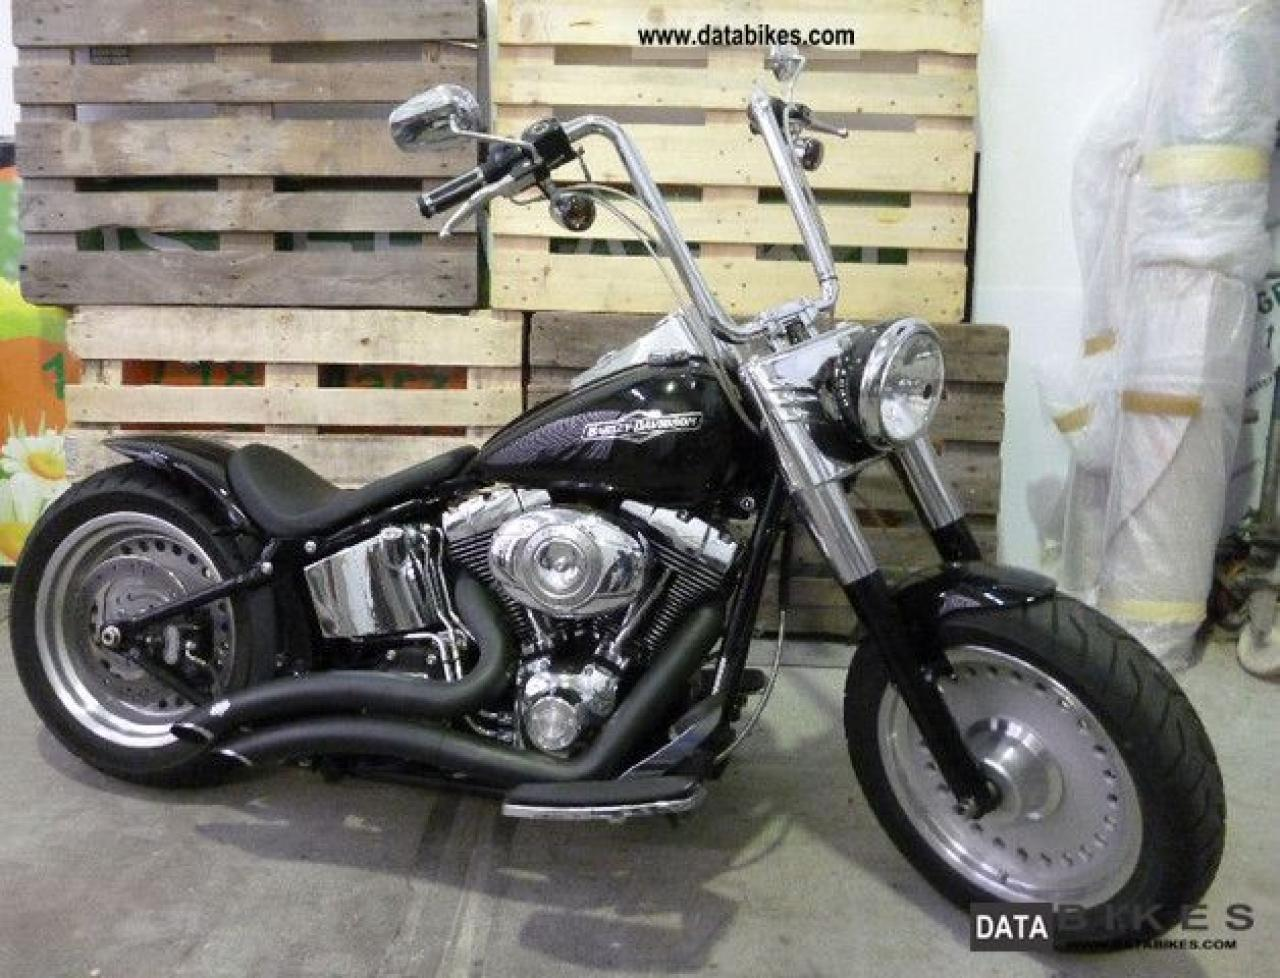 2009 harley davidson flstf fat boy moto zombdrive com. Black Bedroom Furniture Sets. Home Design Ideas